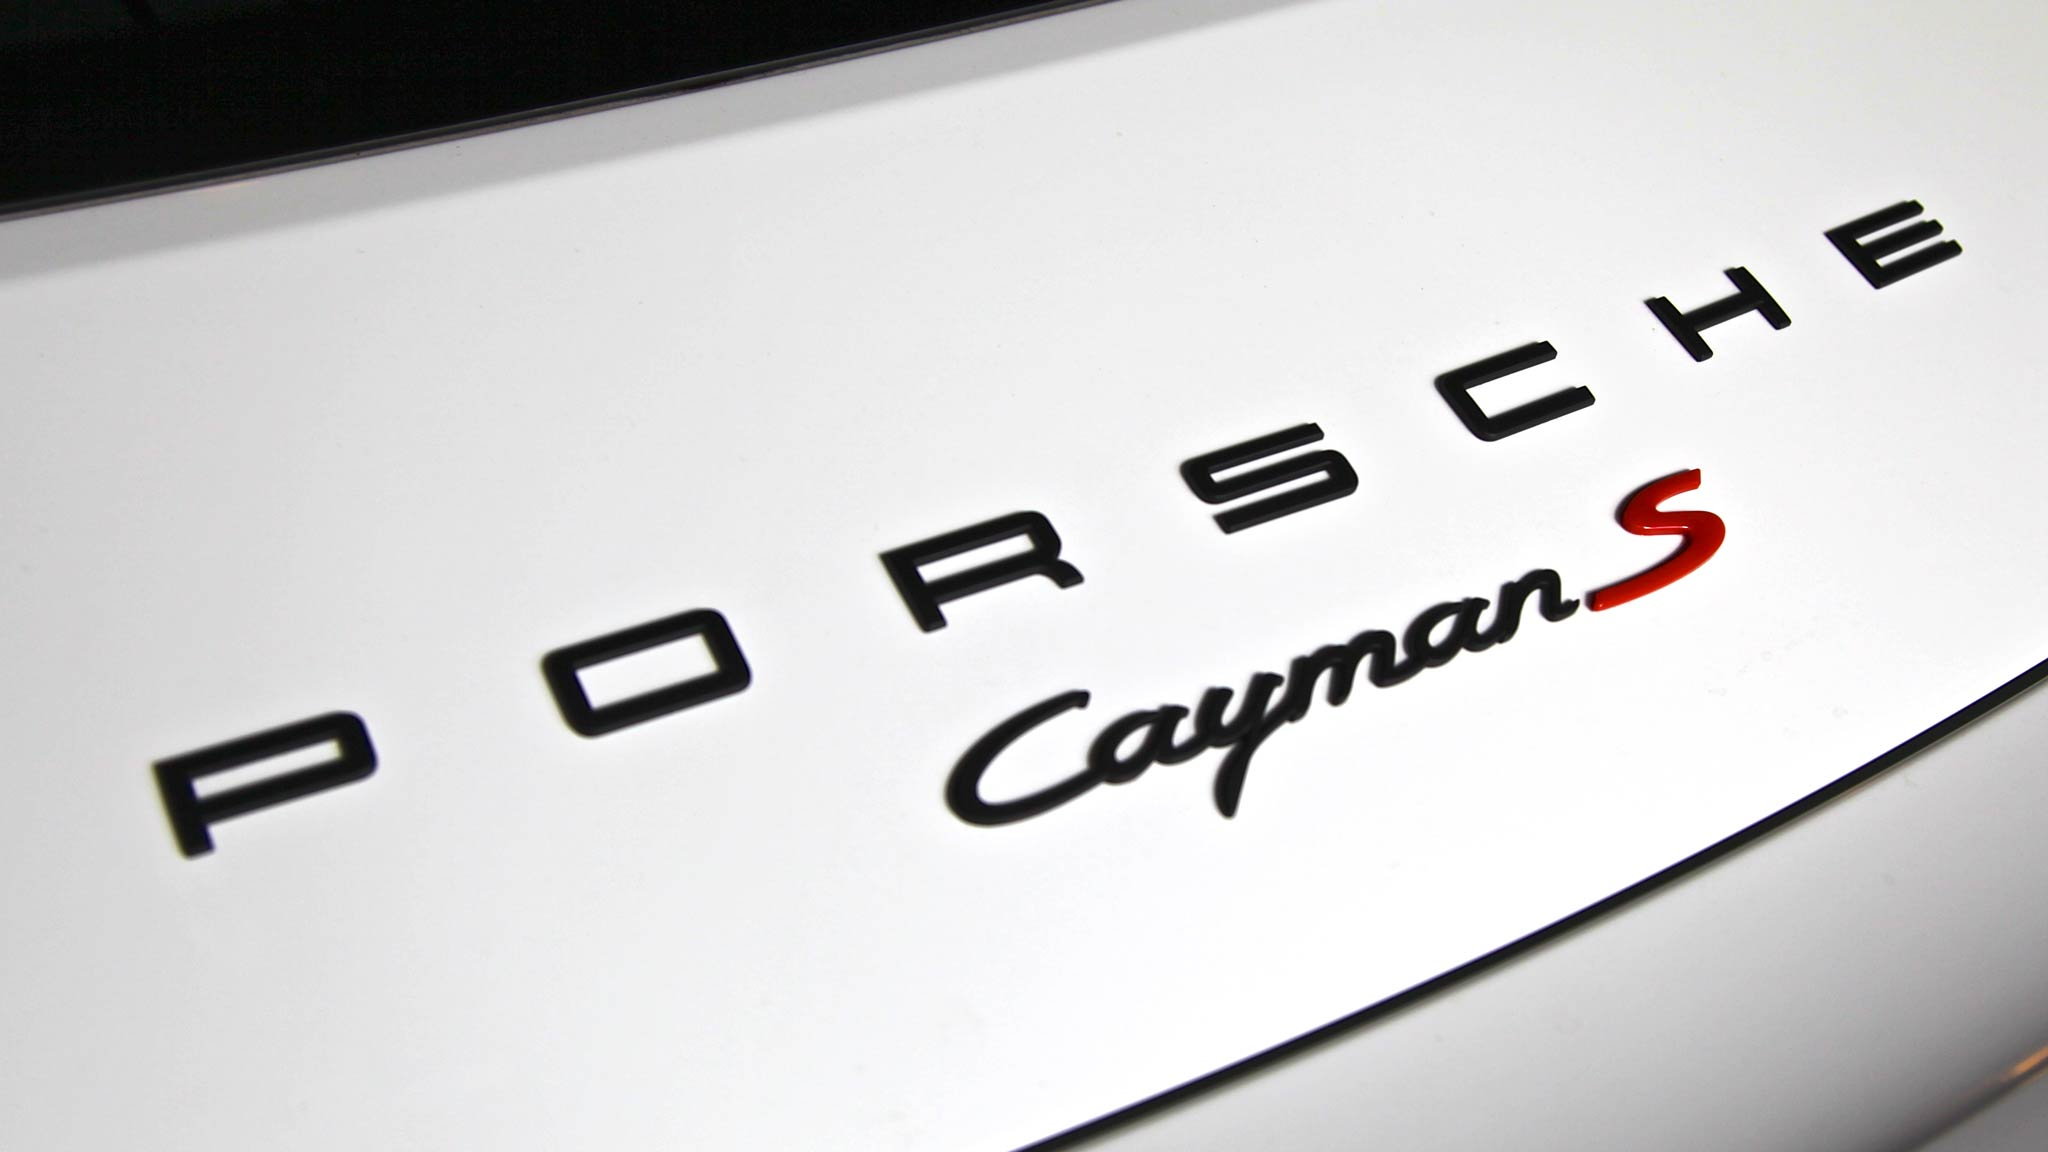 Caymans S Re-Badged, Close Up